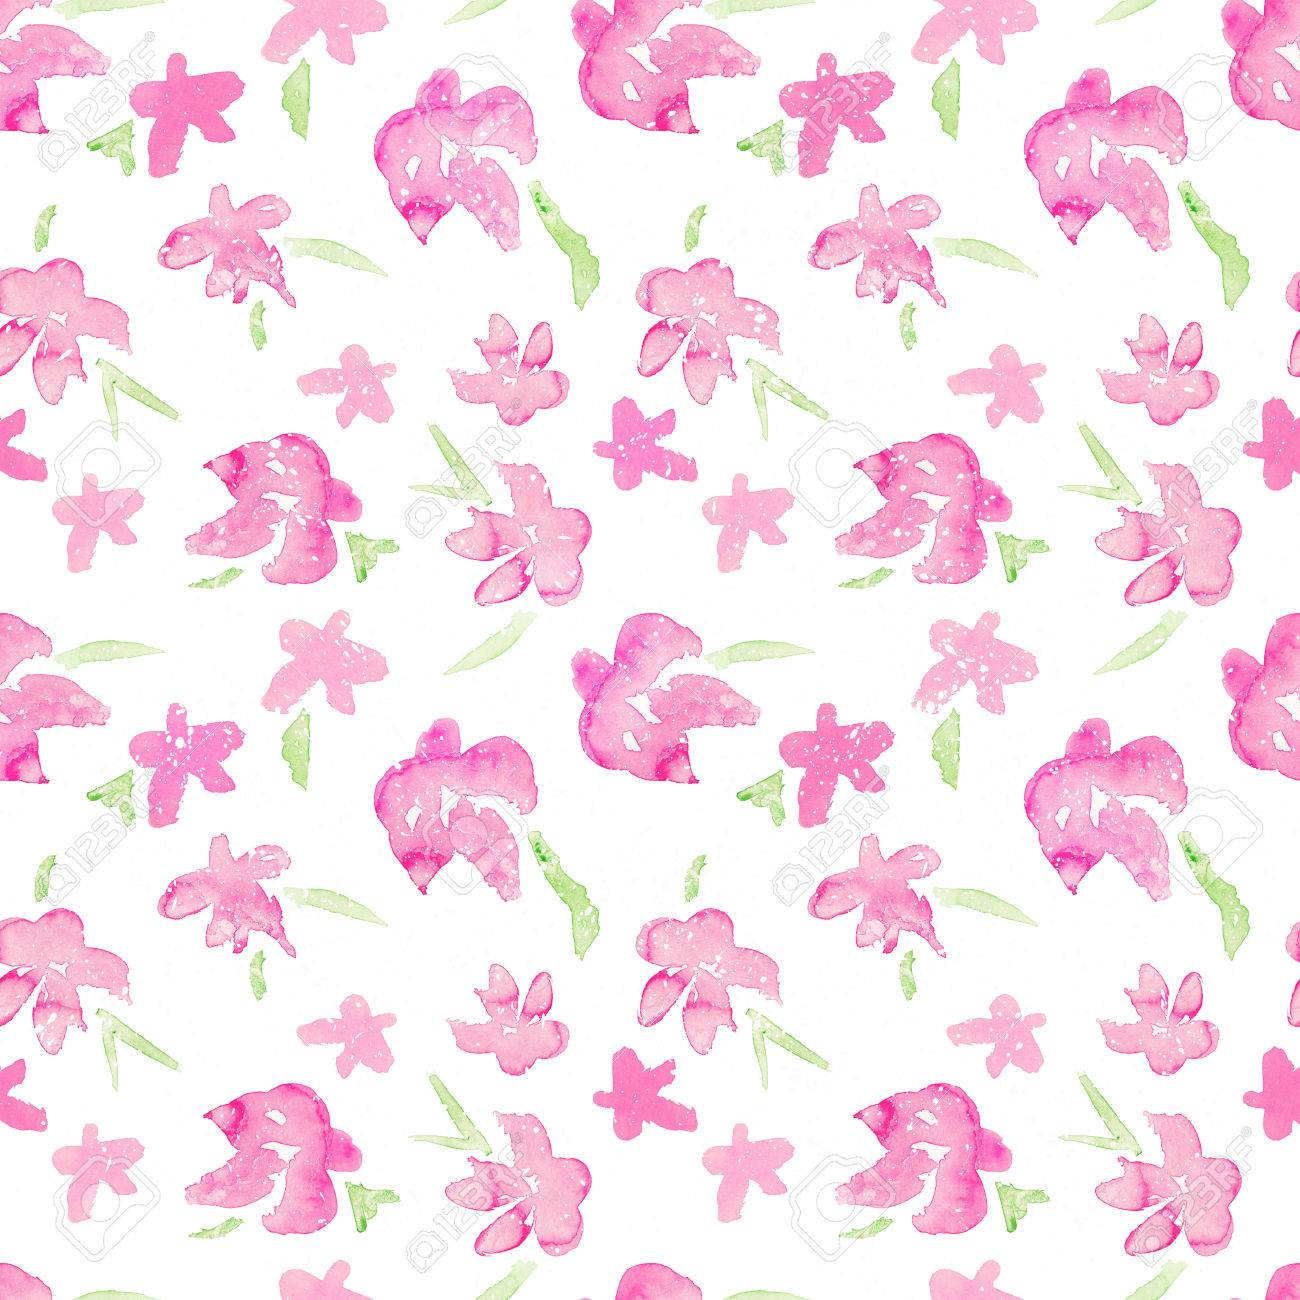 Romantic Pink Floral Seamless Pattern Watercolor Fragile Flowers